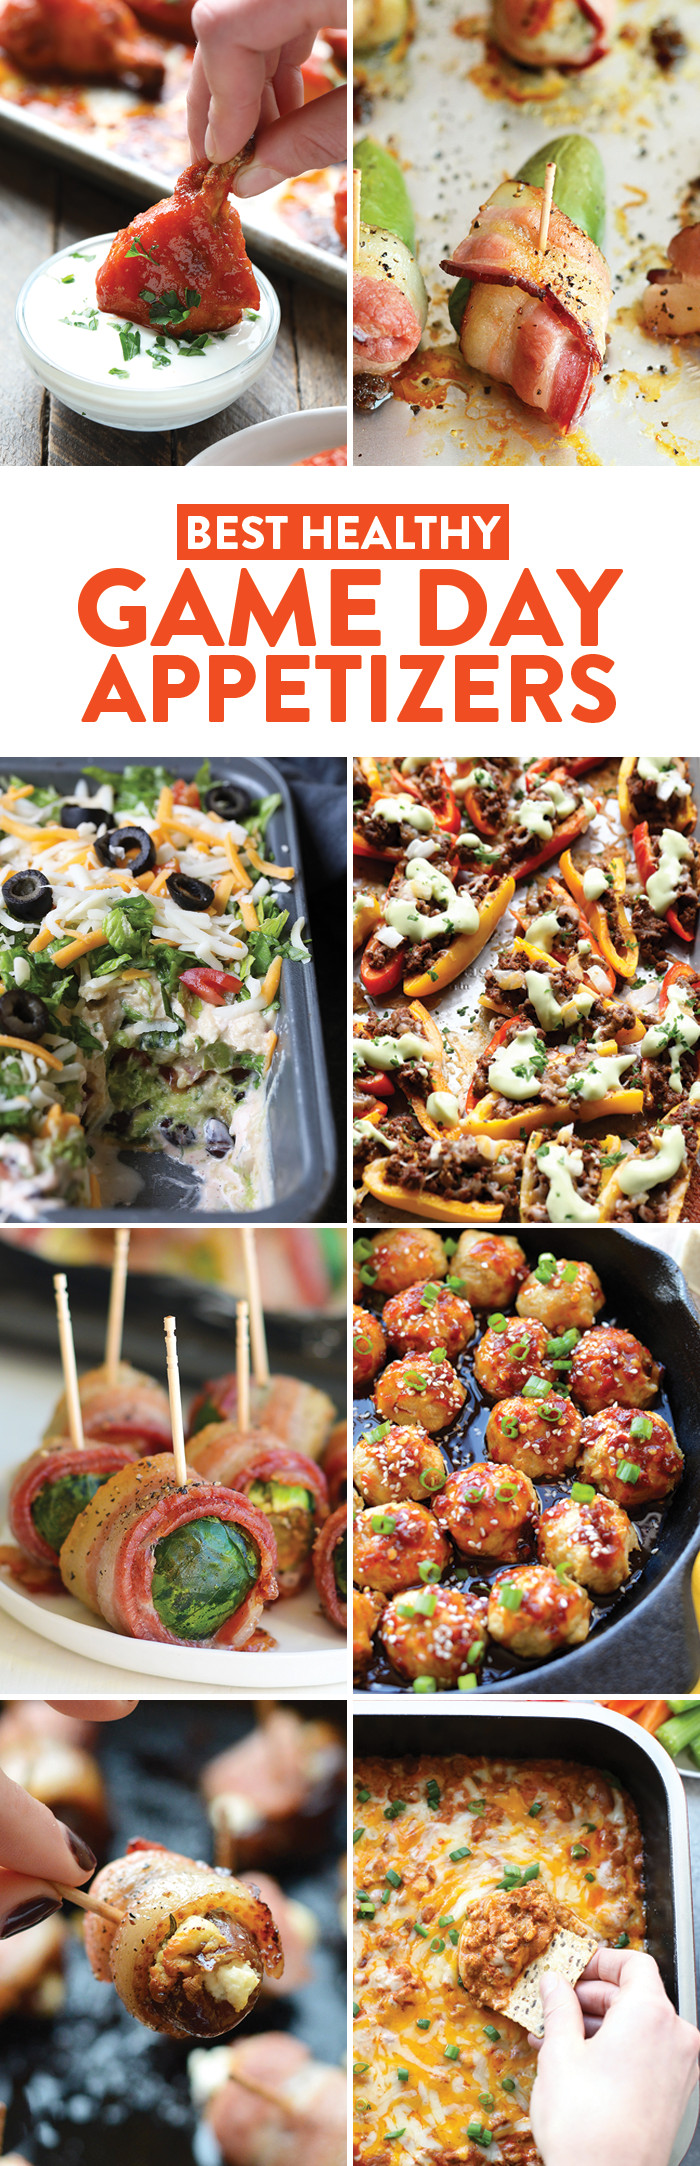 Healthy Game Day Snacks  Best Appetizers for a Healthy Game Day Fit Foo Finds